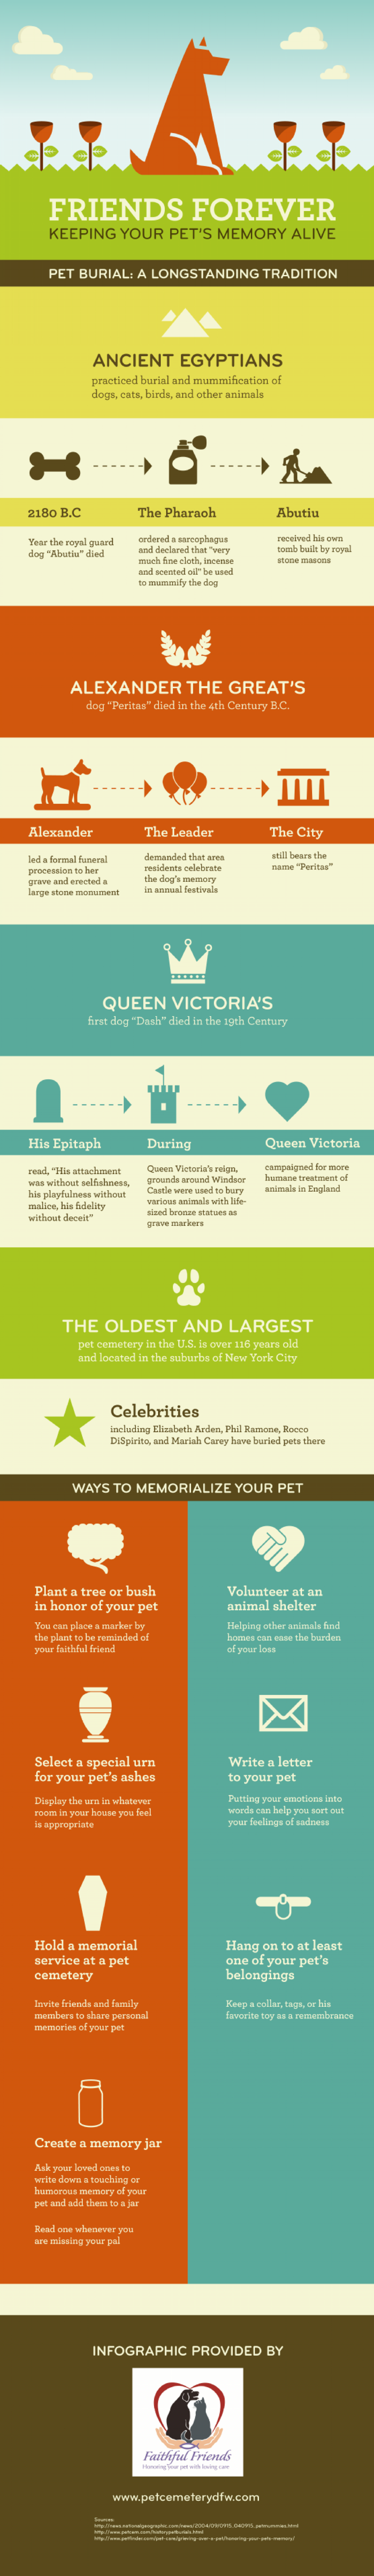 Friends Forever: Keeping Your Pet's Memory Alive Infographic